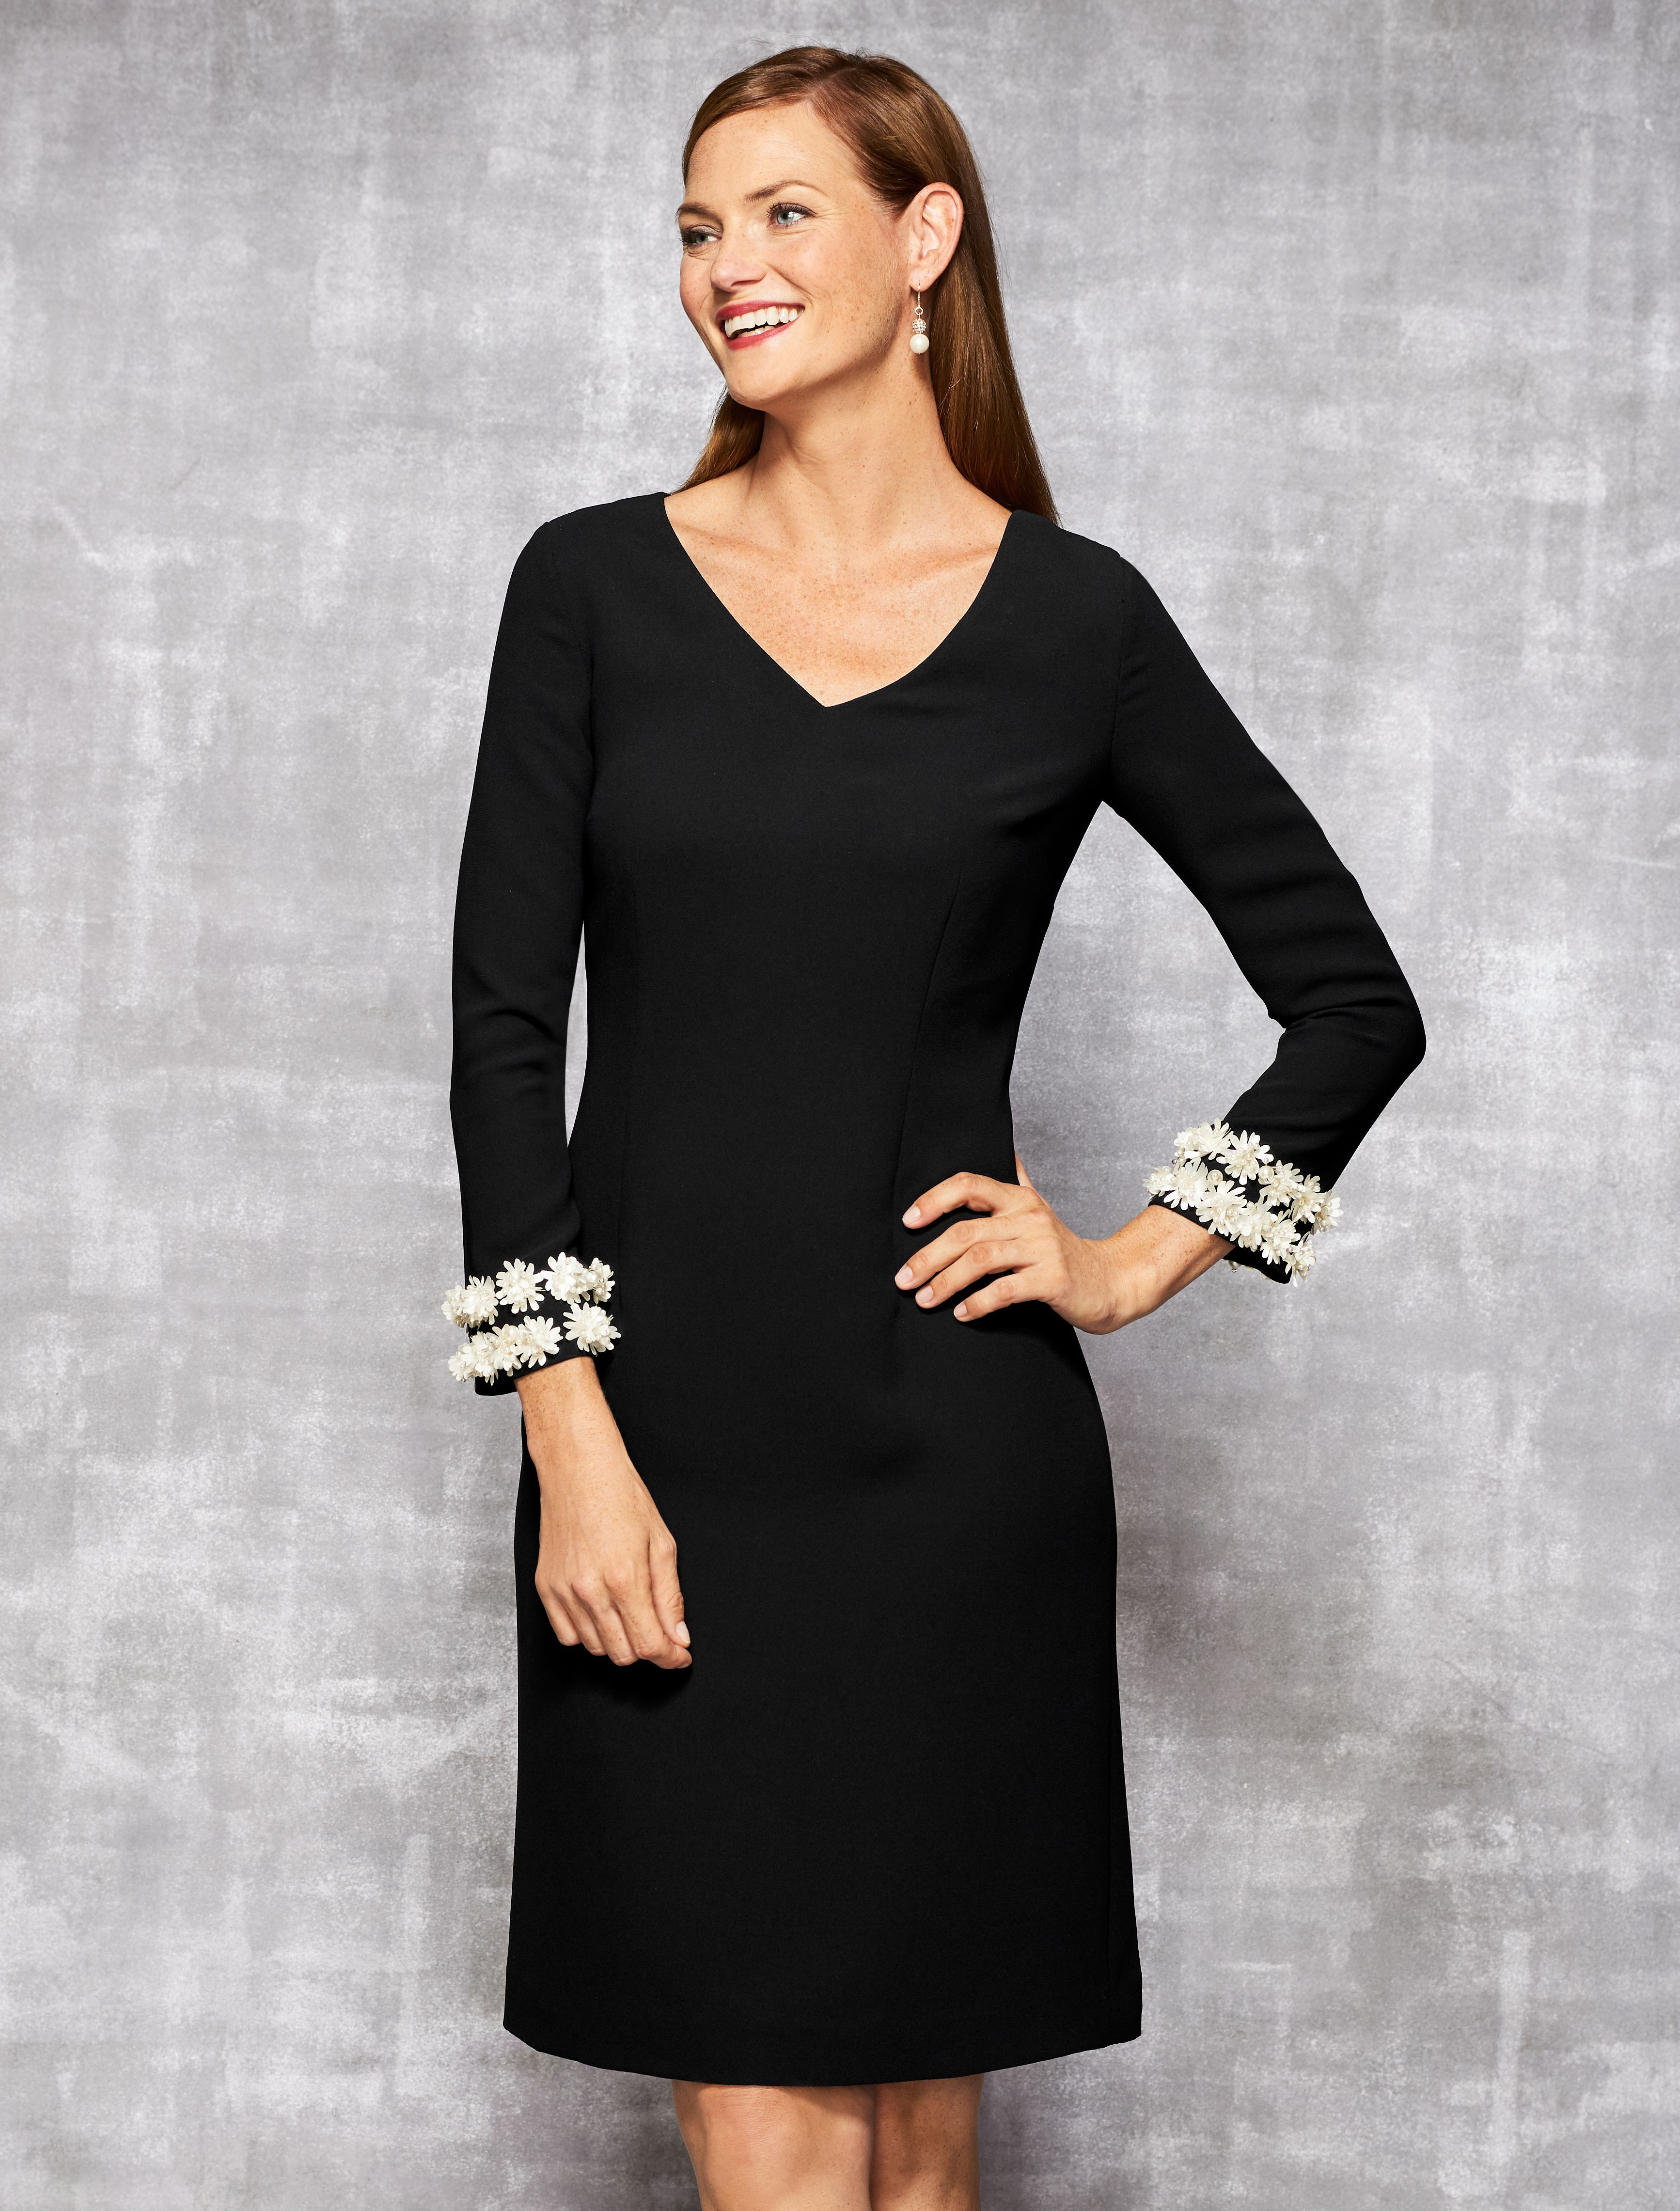 c2ea3f85a1f A little black dress with a twist. This sleek shift silhouette features  three-quarter sleeves embellished with delicate white flowers along the  cuff.